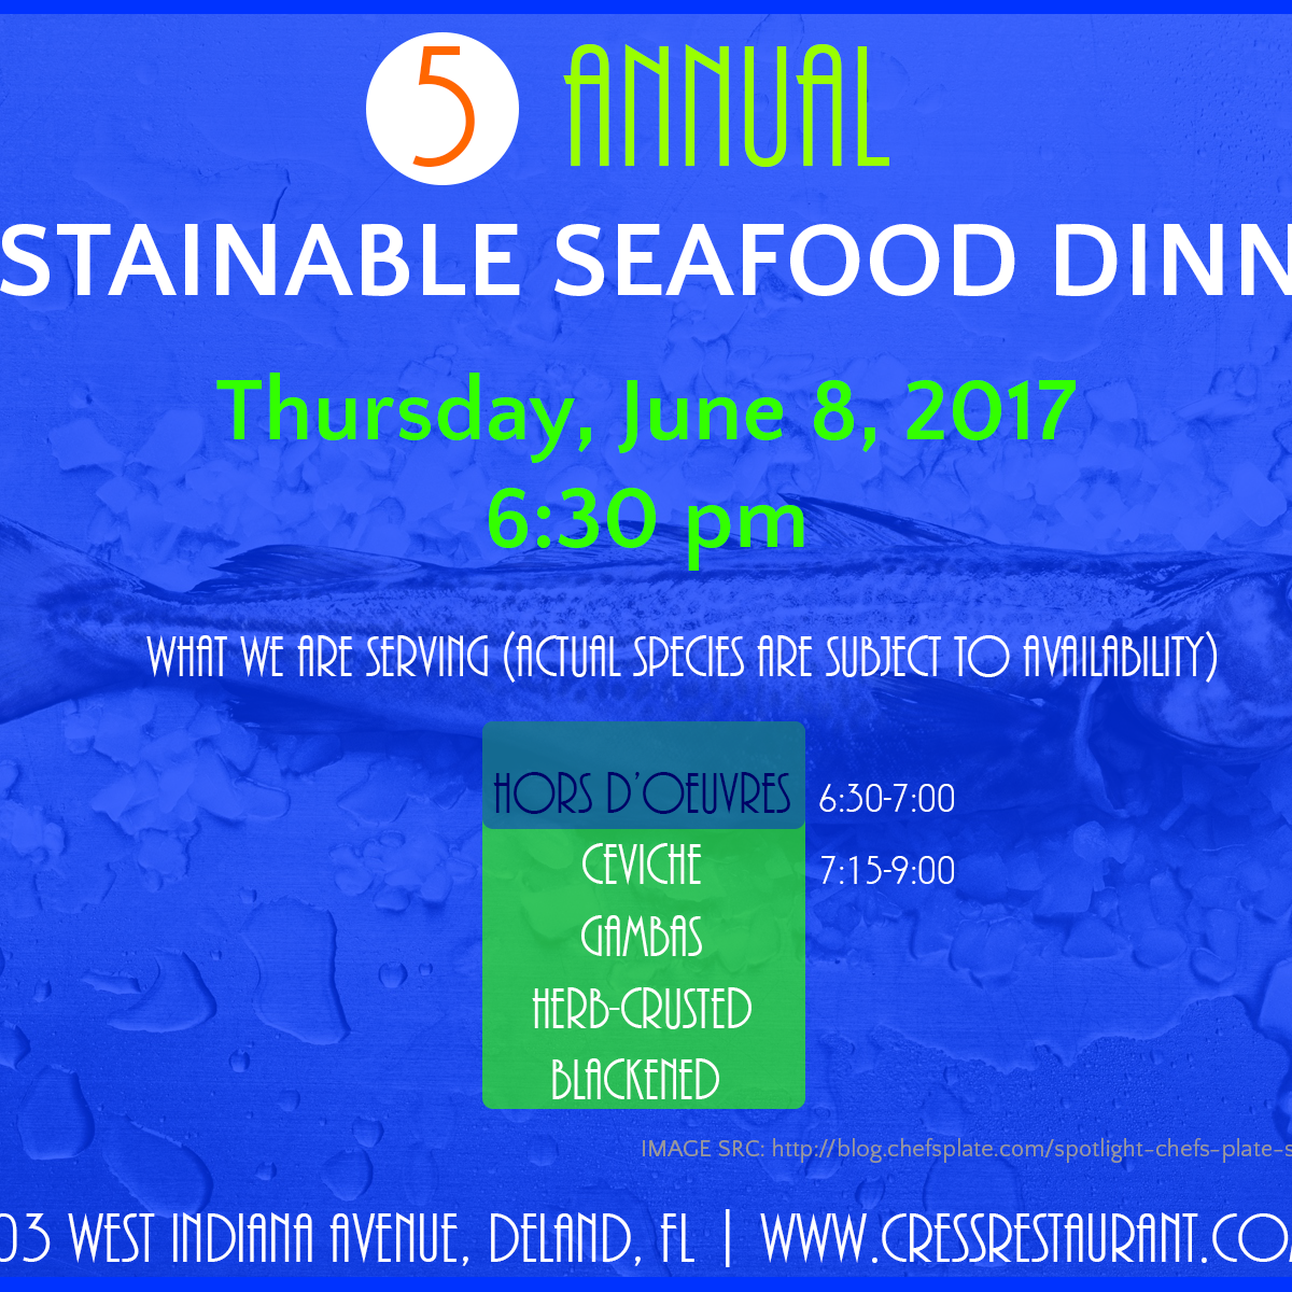 5th Annual Sustainable Multi-Course Seafood Dinner at Cress Restaurant in Deland- June 8 @ 6:30pm